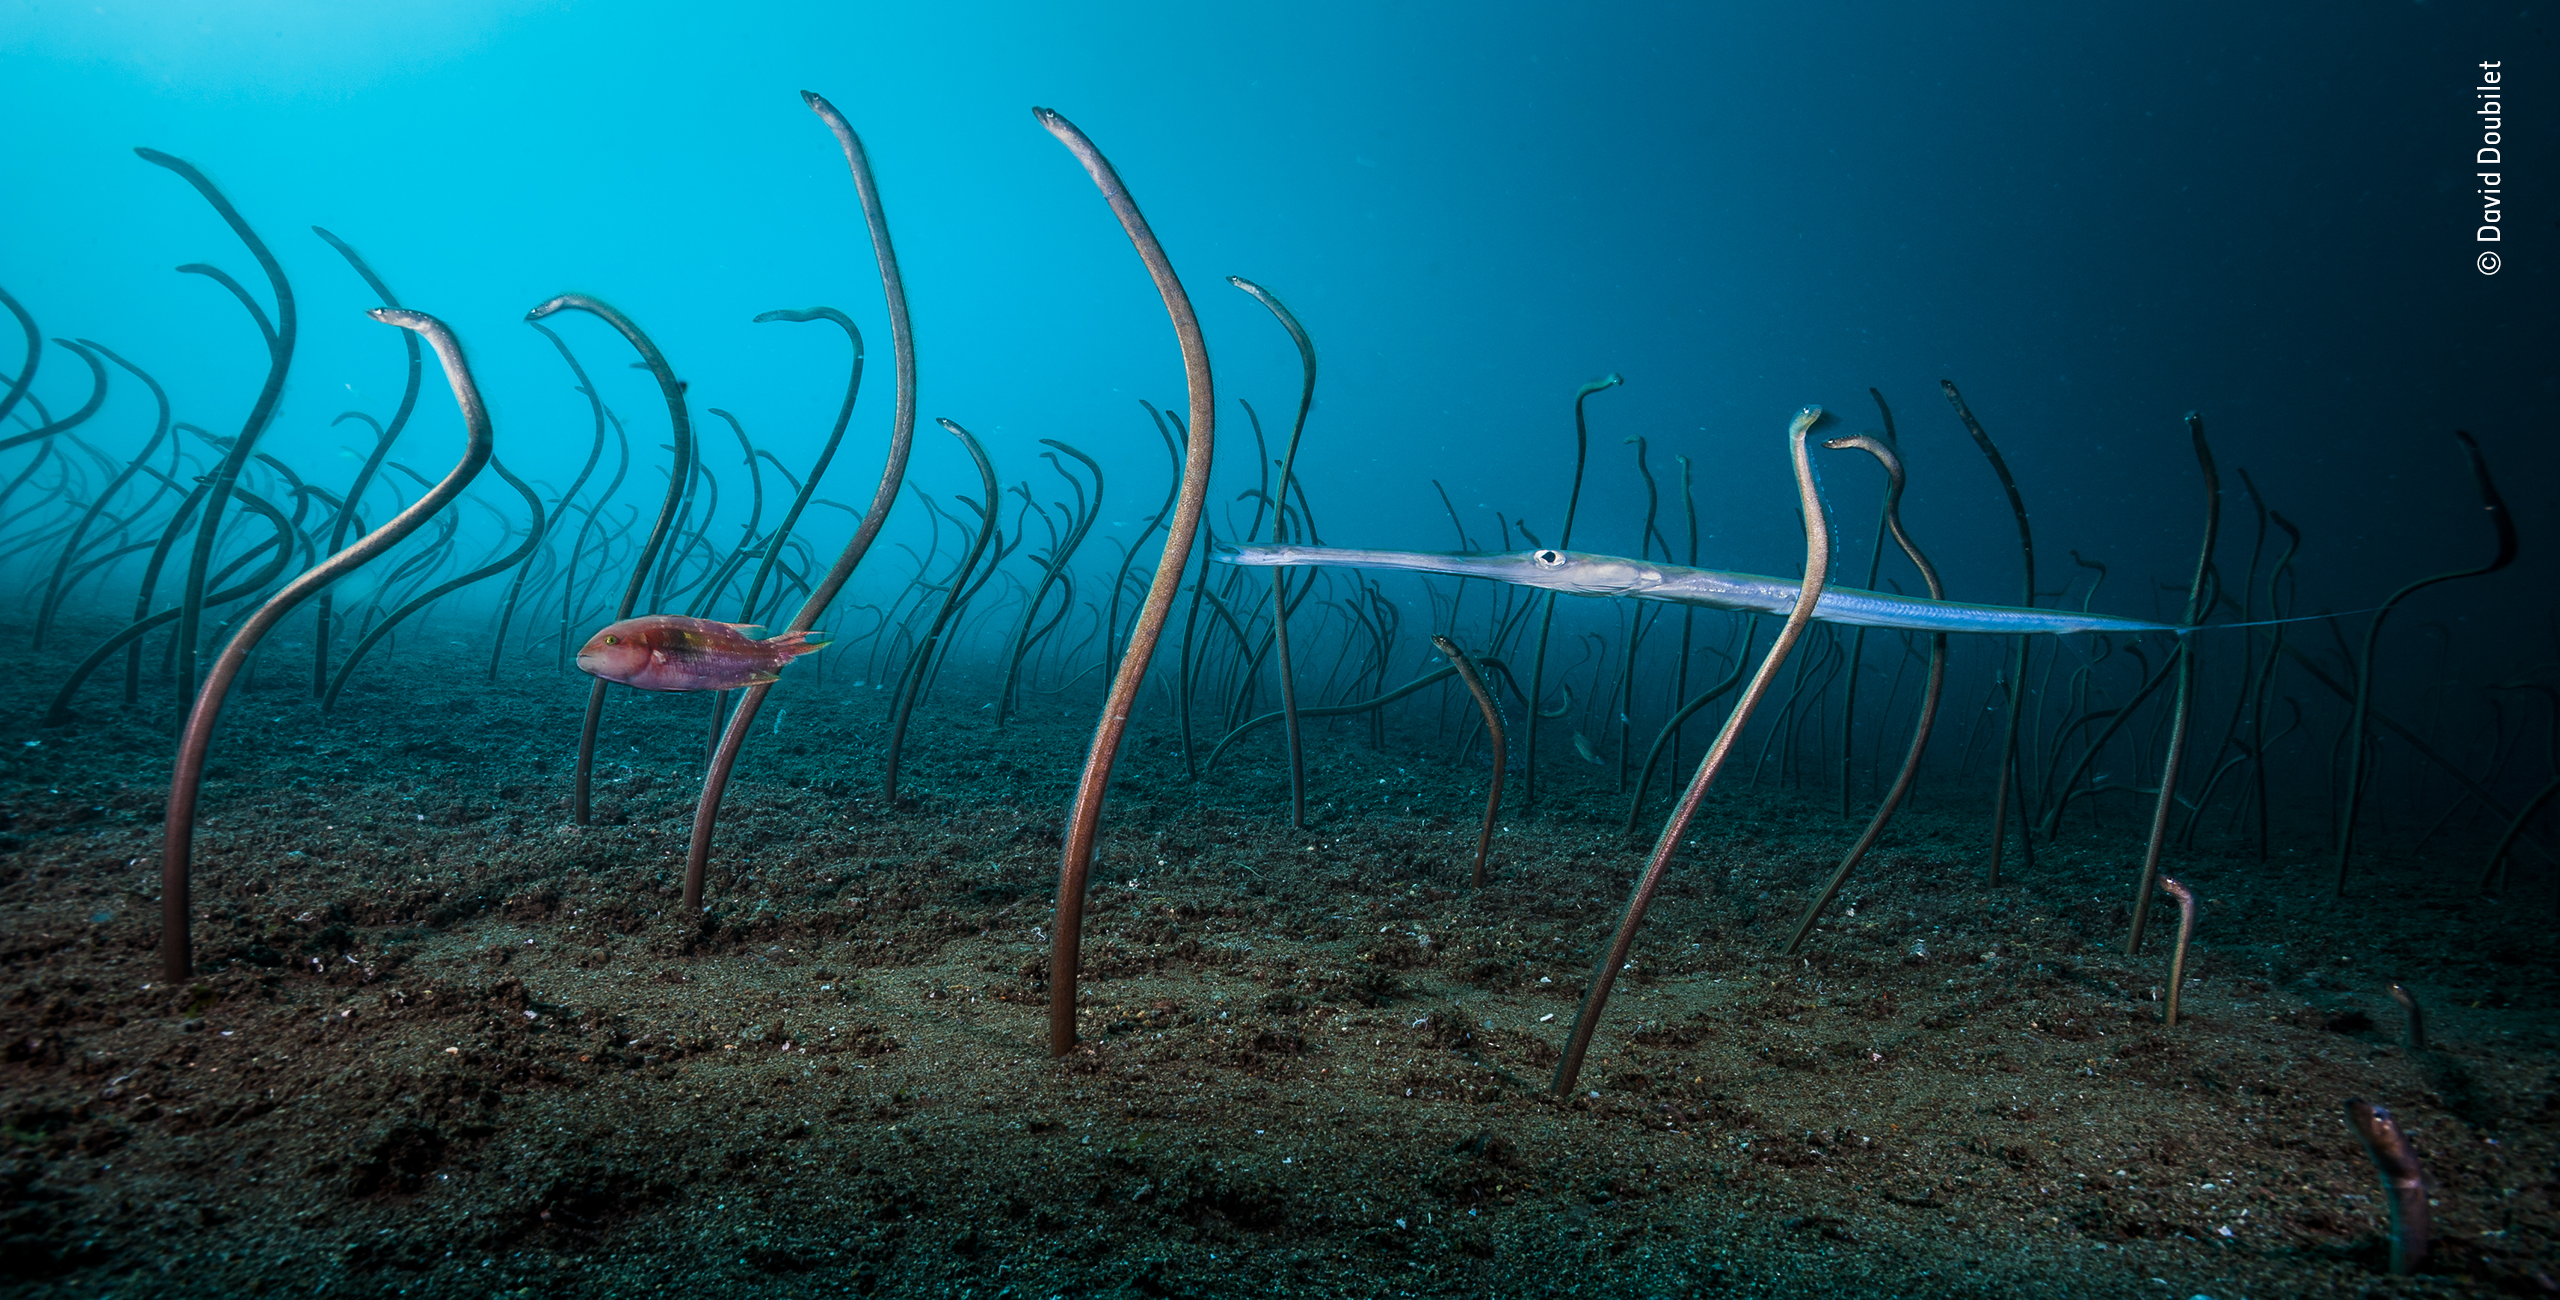 A garden of eels image won the Under Water category of the Wildlife Photographer of the Year (David Doubilet/PA)